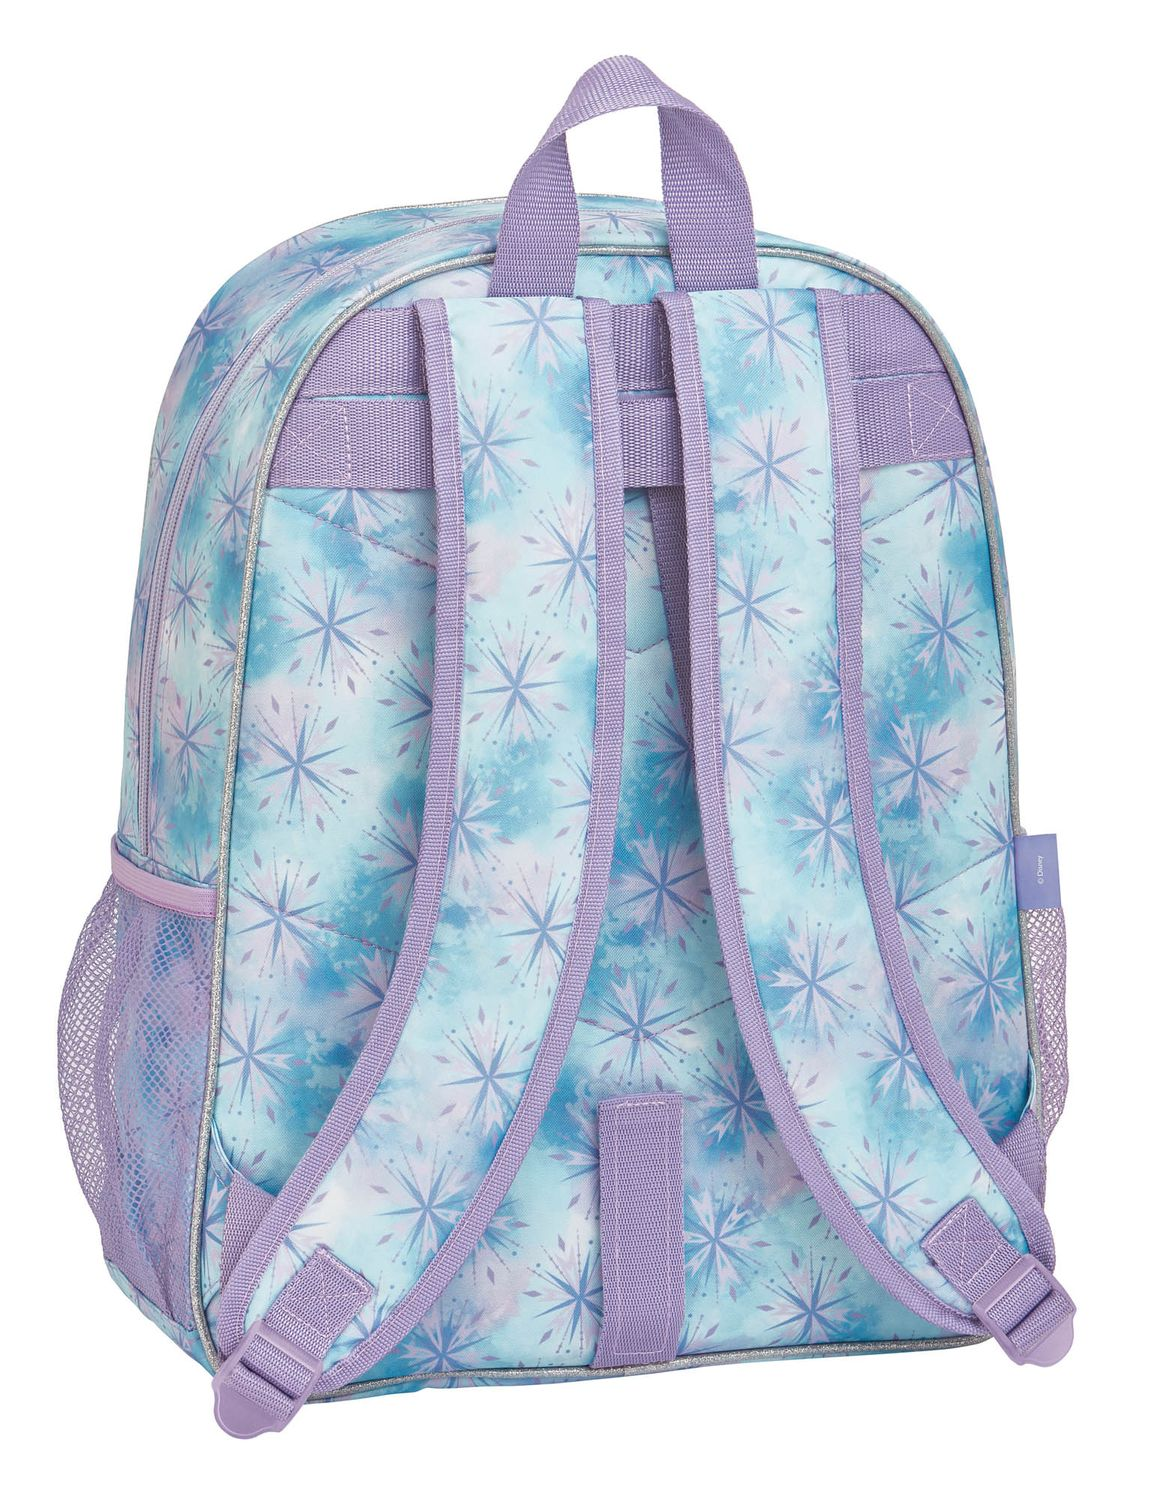 Disney Frozen 2 Backpack 42cm – image 2